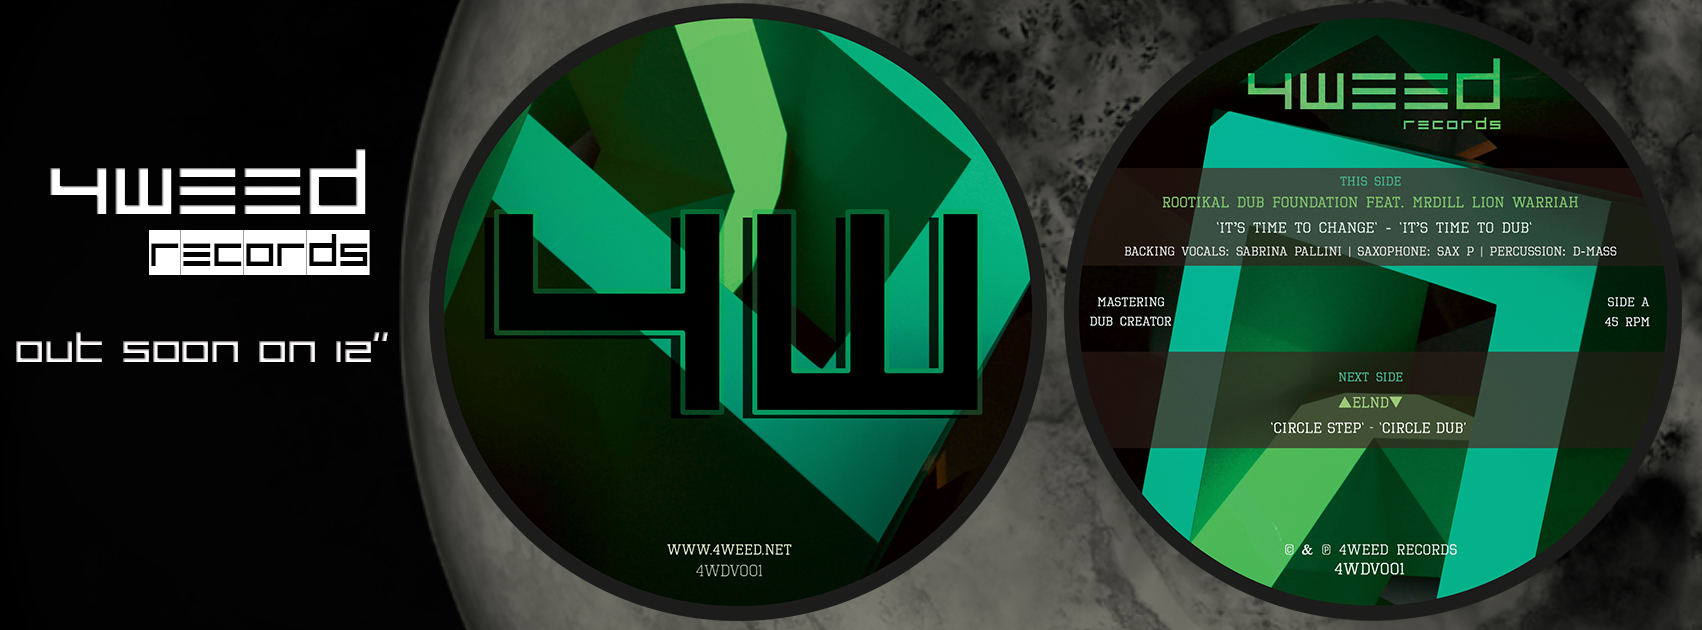 4Weed Records - 4WDV001